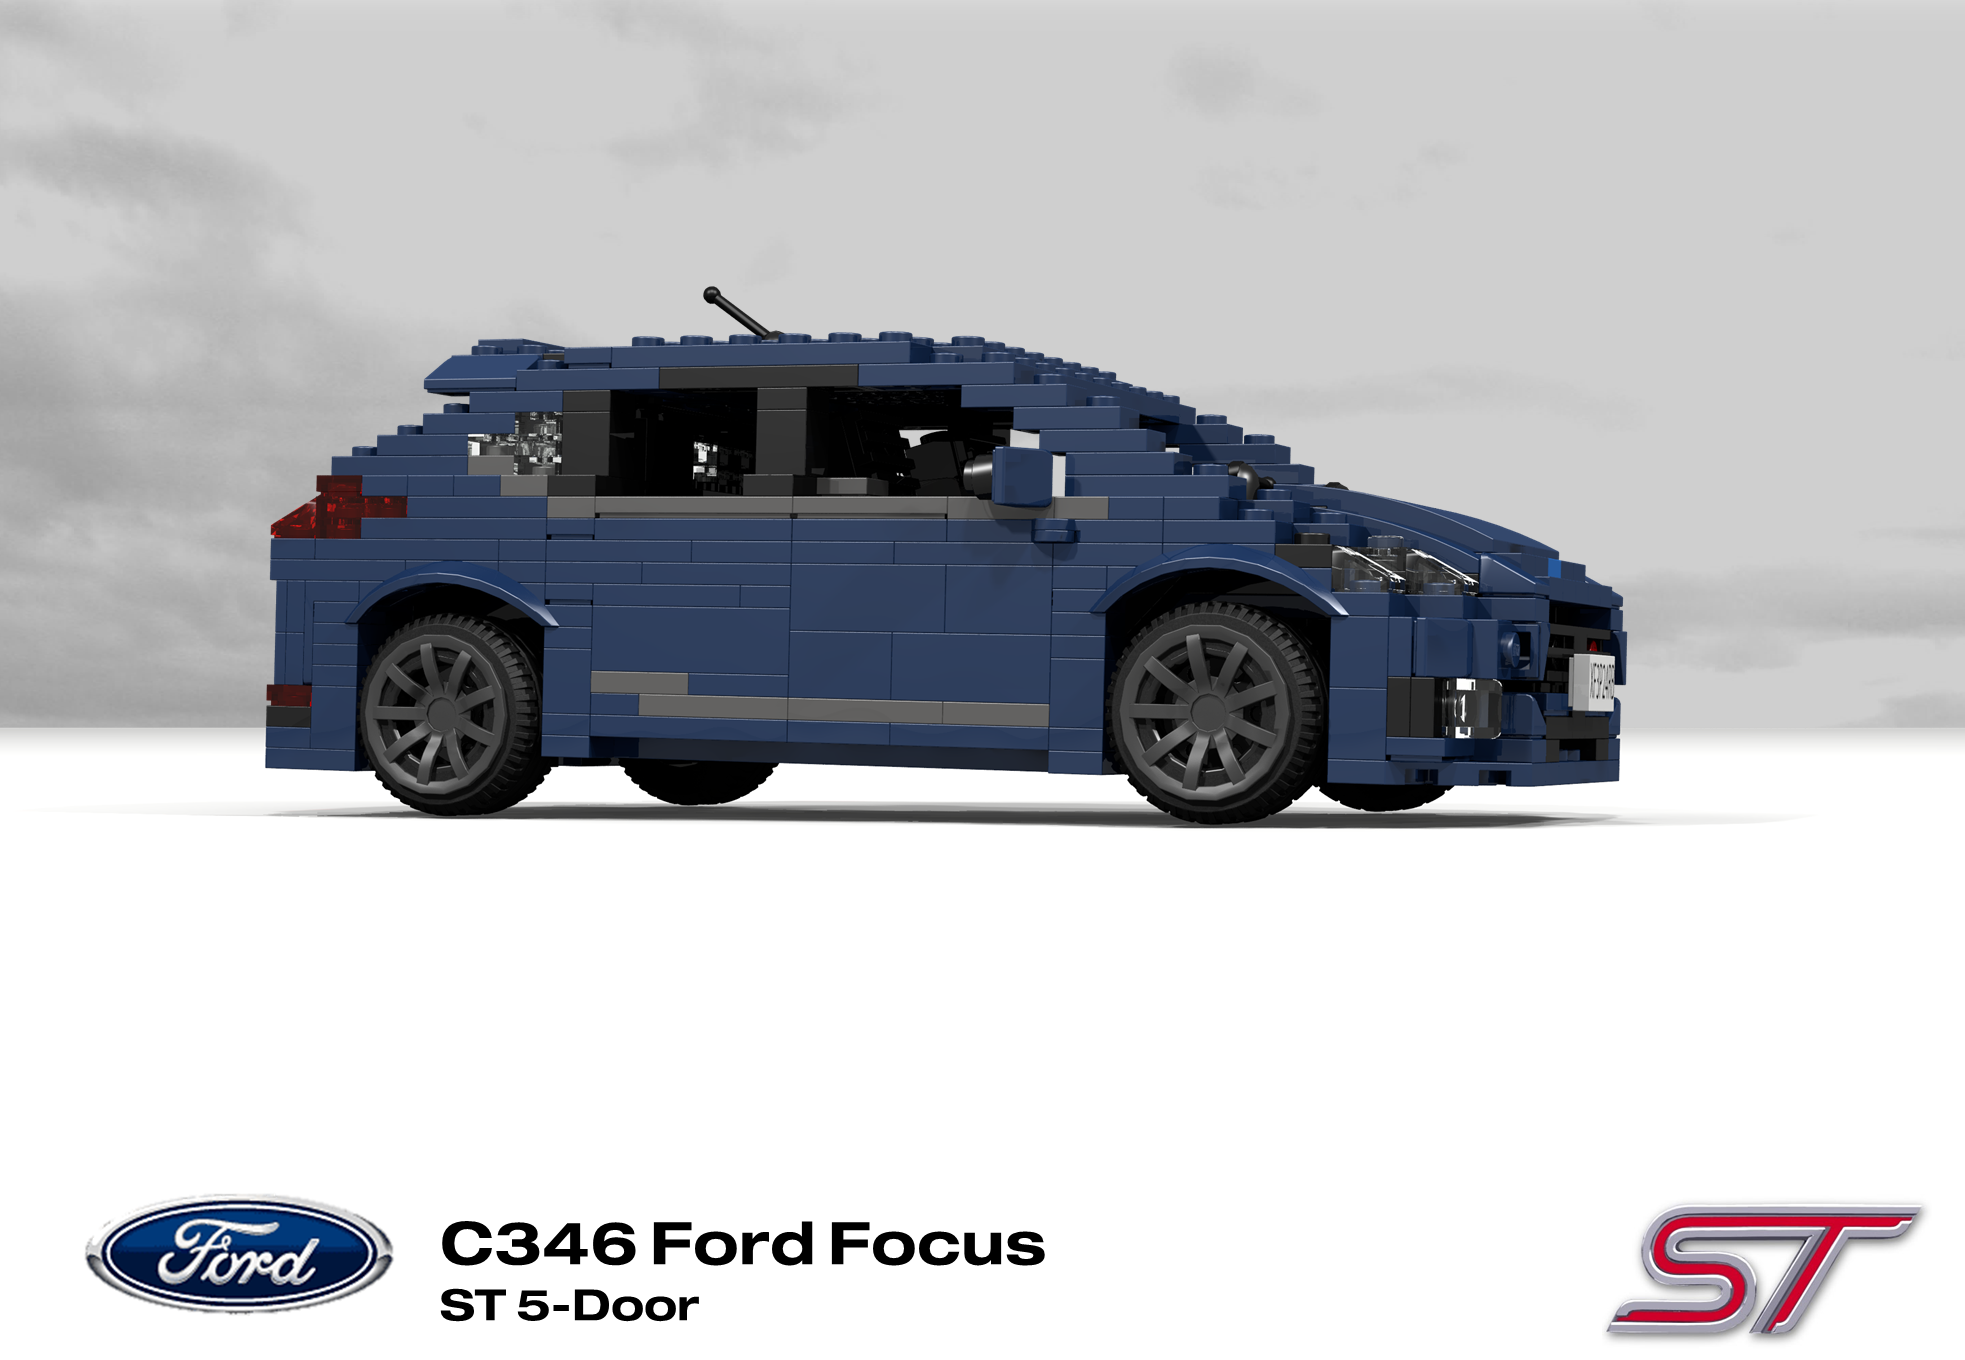 ford_focus_c346mca_st_hatch_07.png